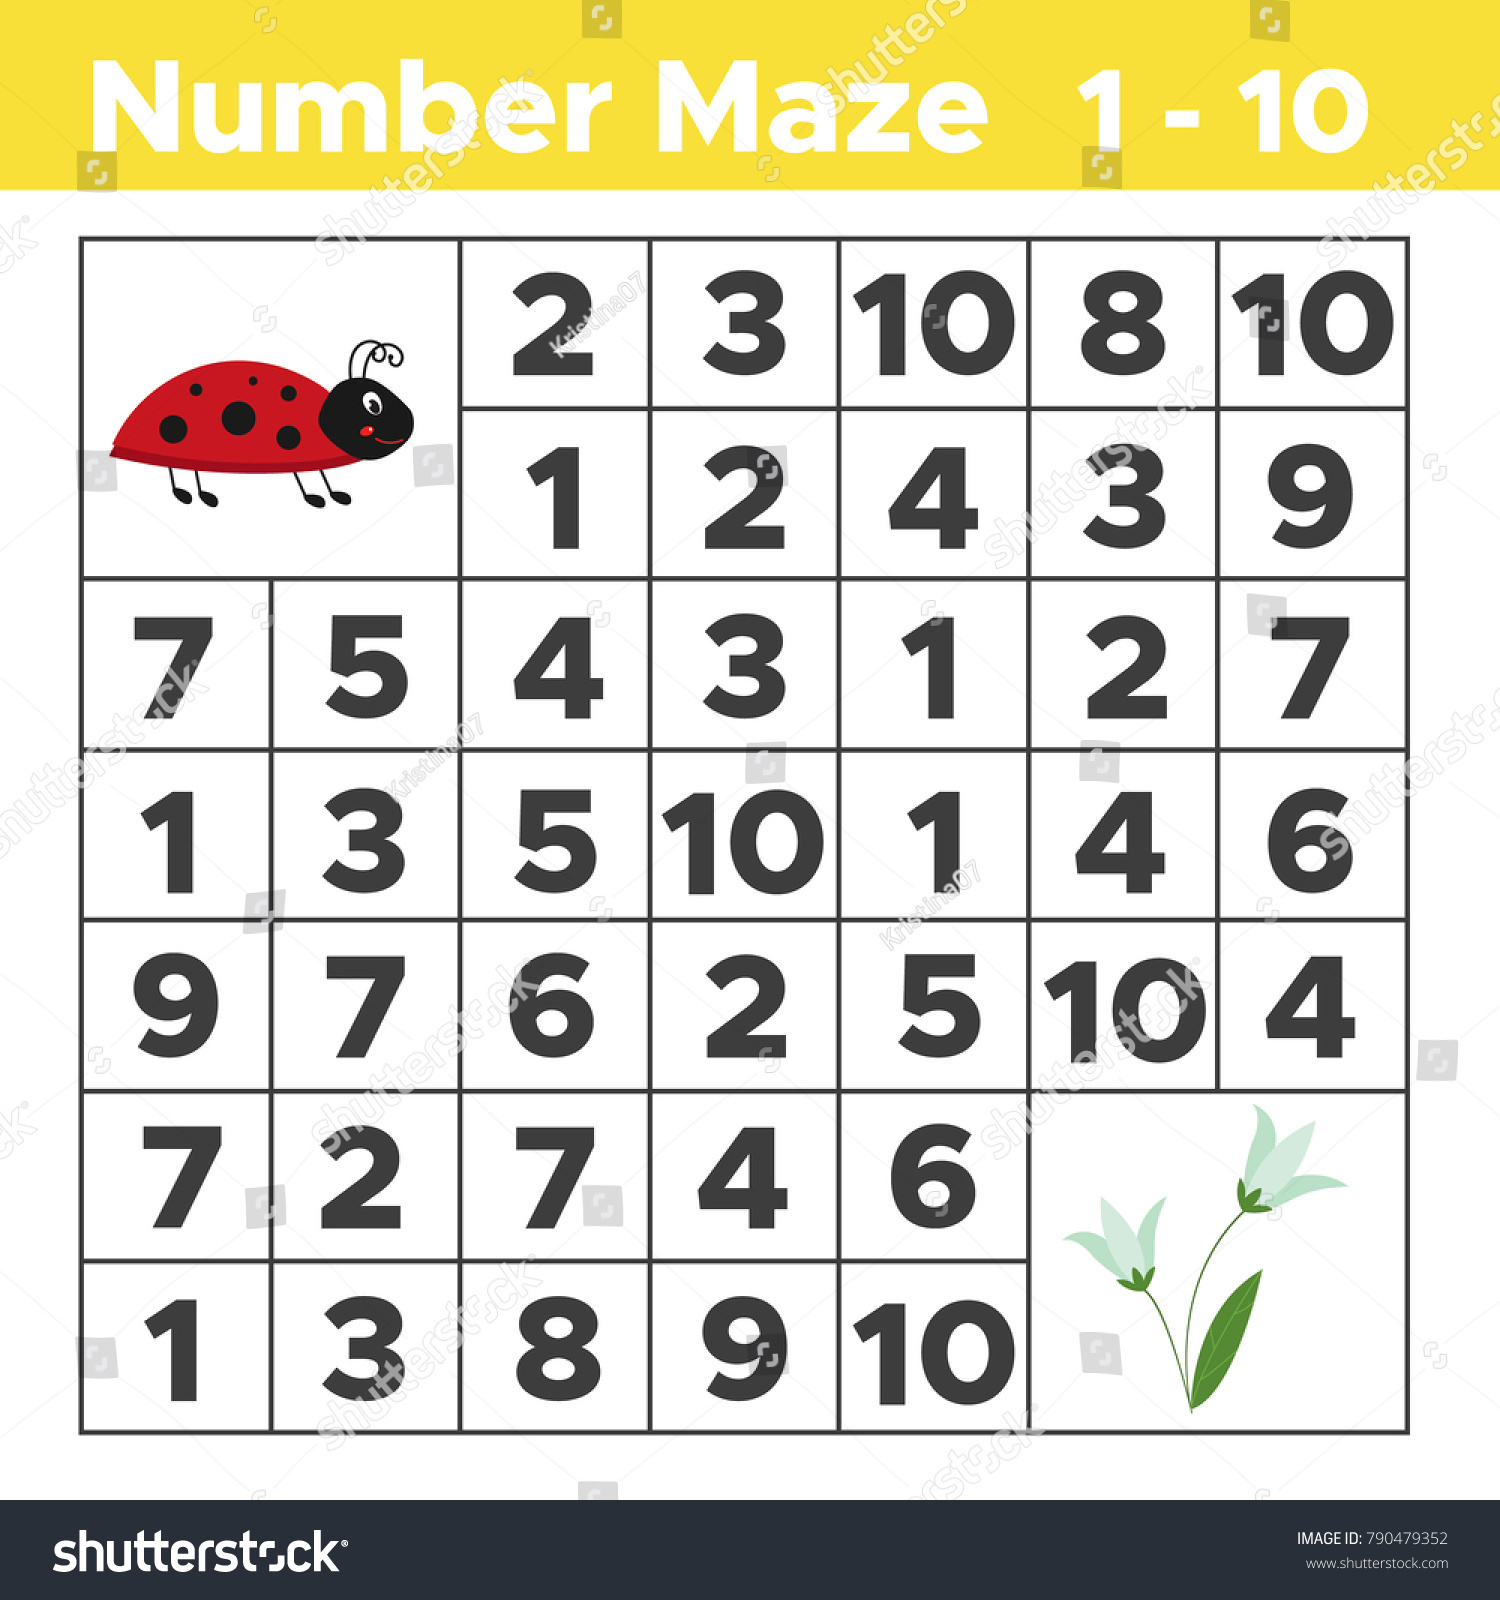 worksheet Ladybug Counting Worksheet number maze math puzzle game children stock vector 790479352 for help ladybug find spring flowers counting